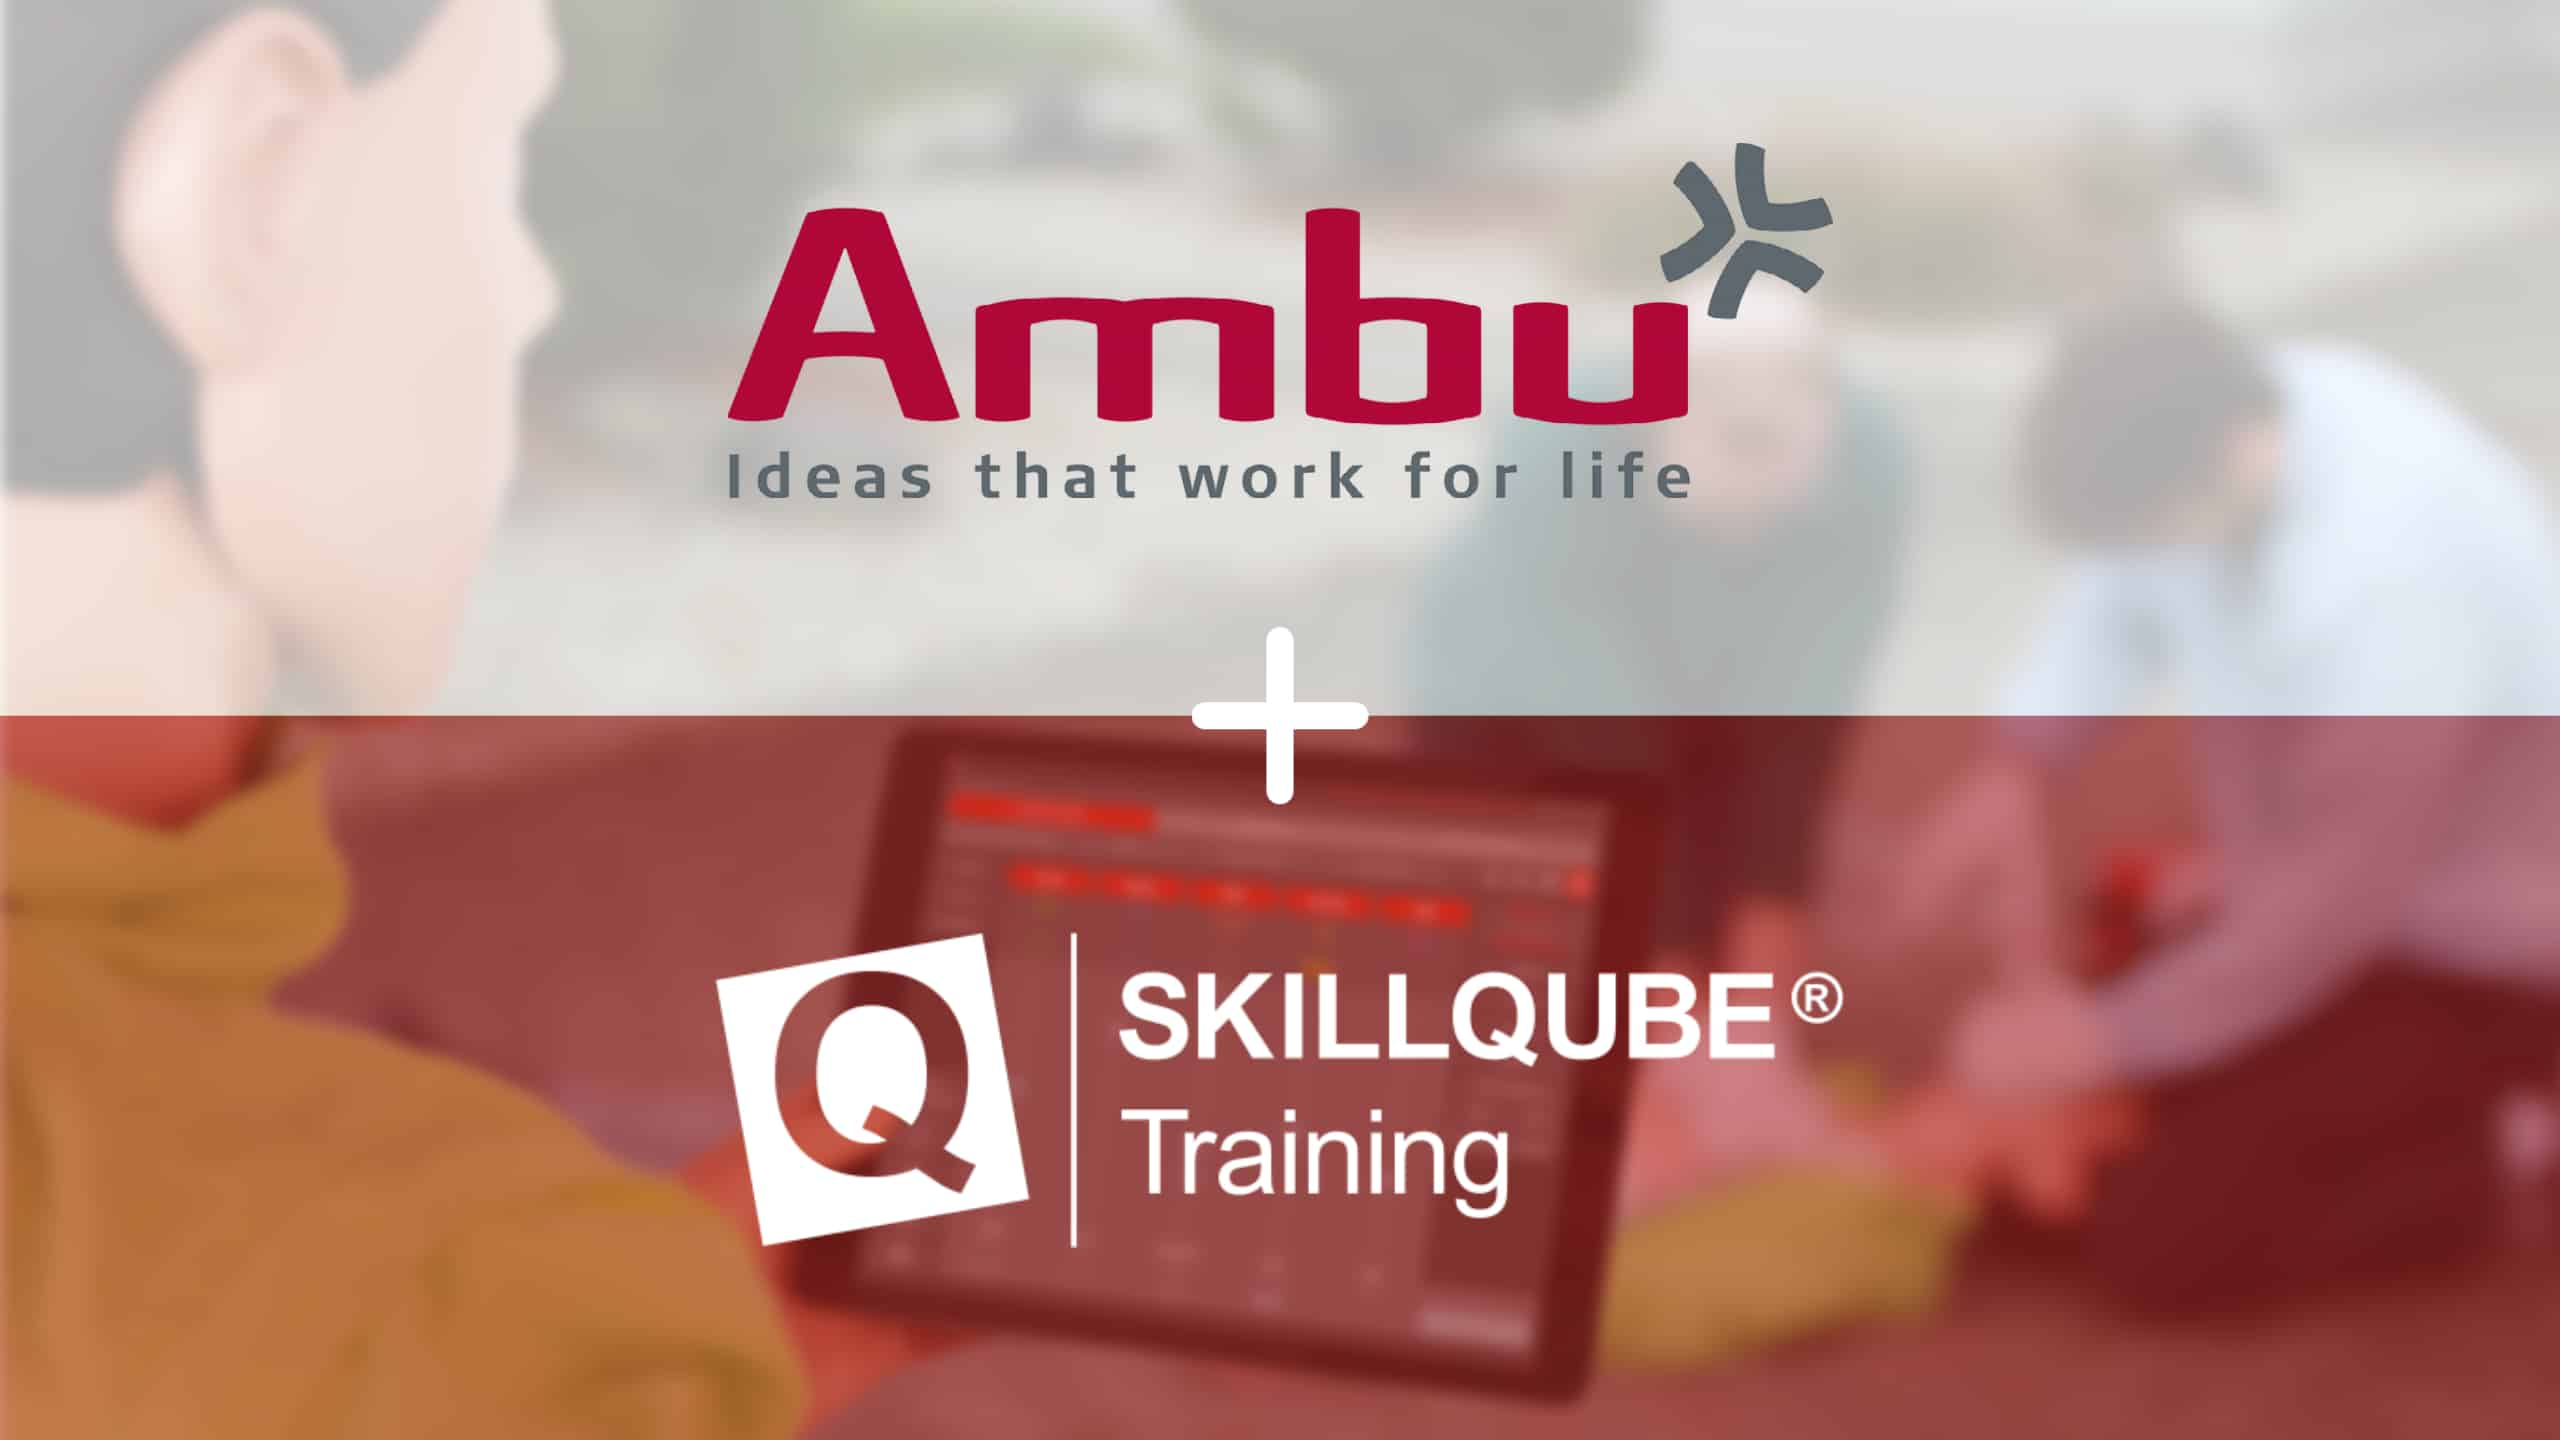 SKILLQUBE in Kooperation mit Ambu